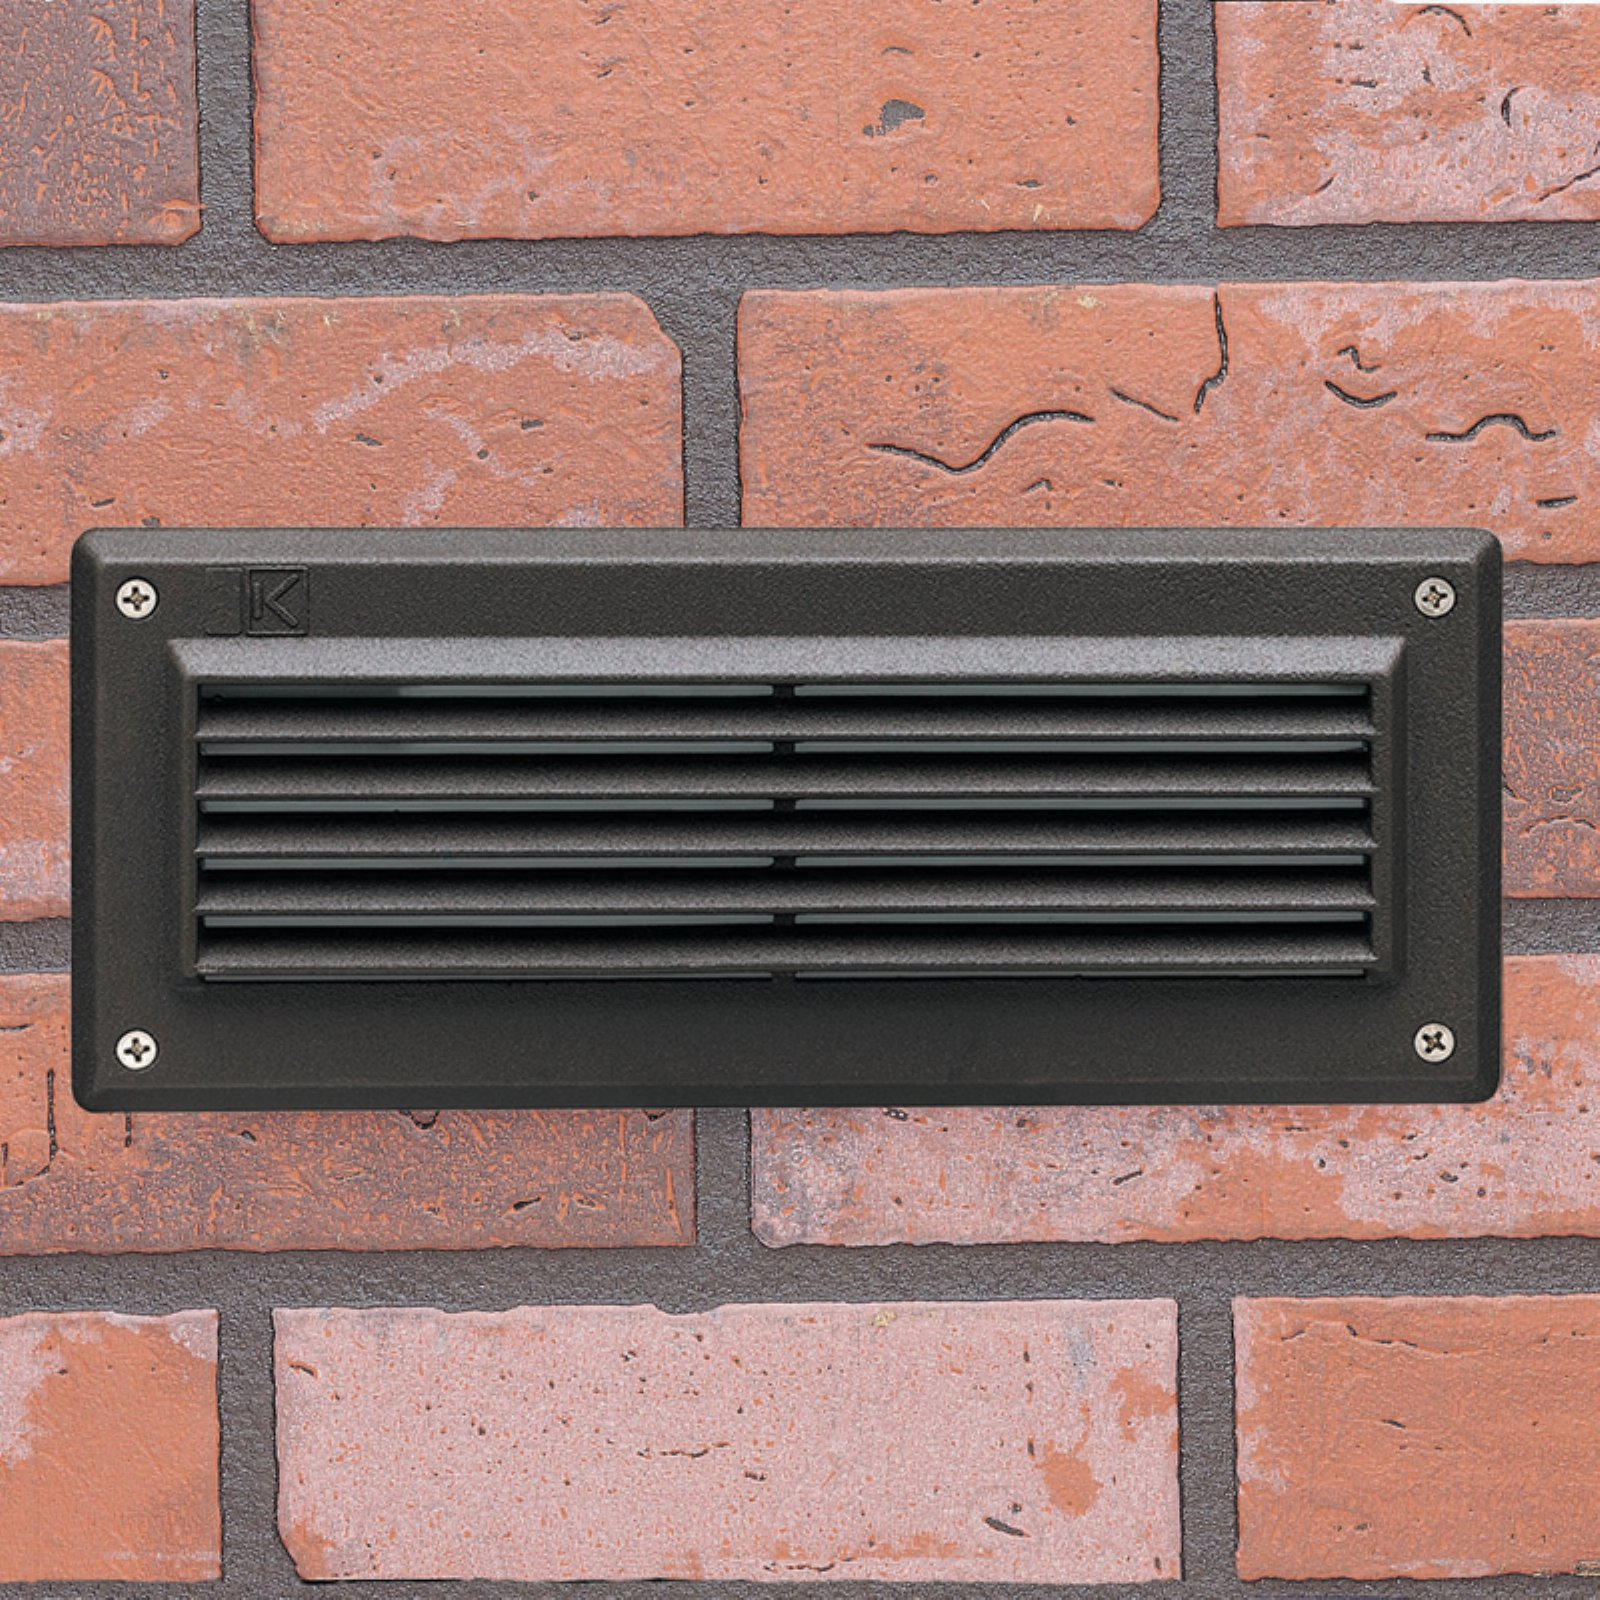 Kichler Recessed Brick Light with Louver